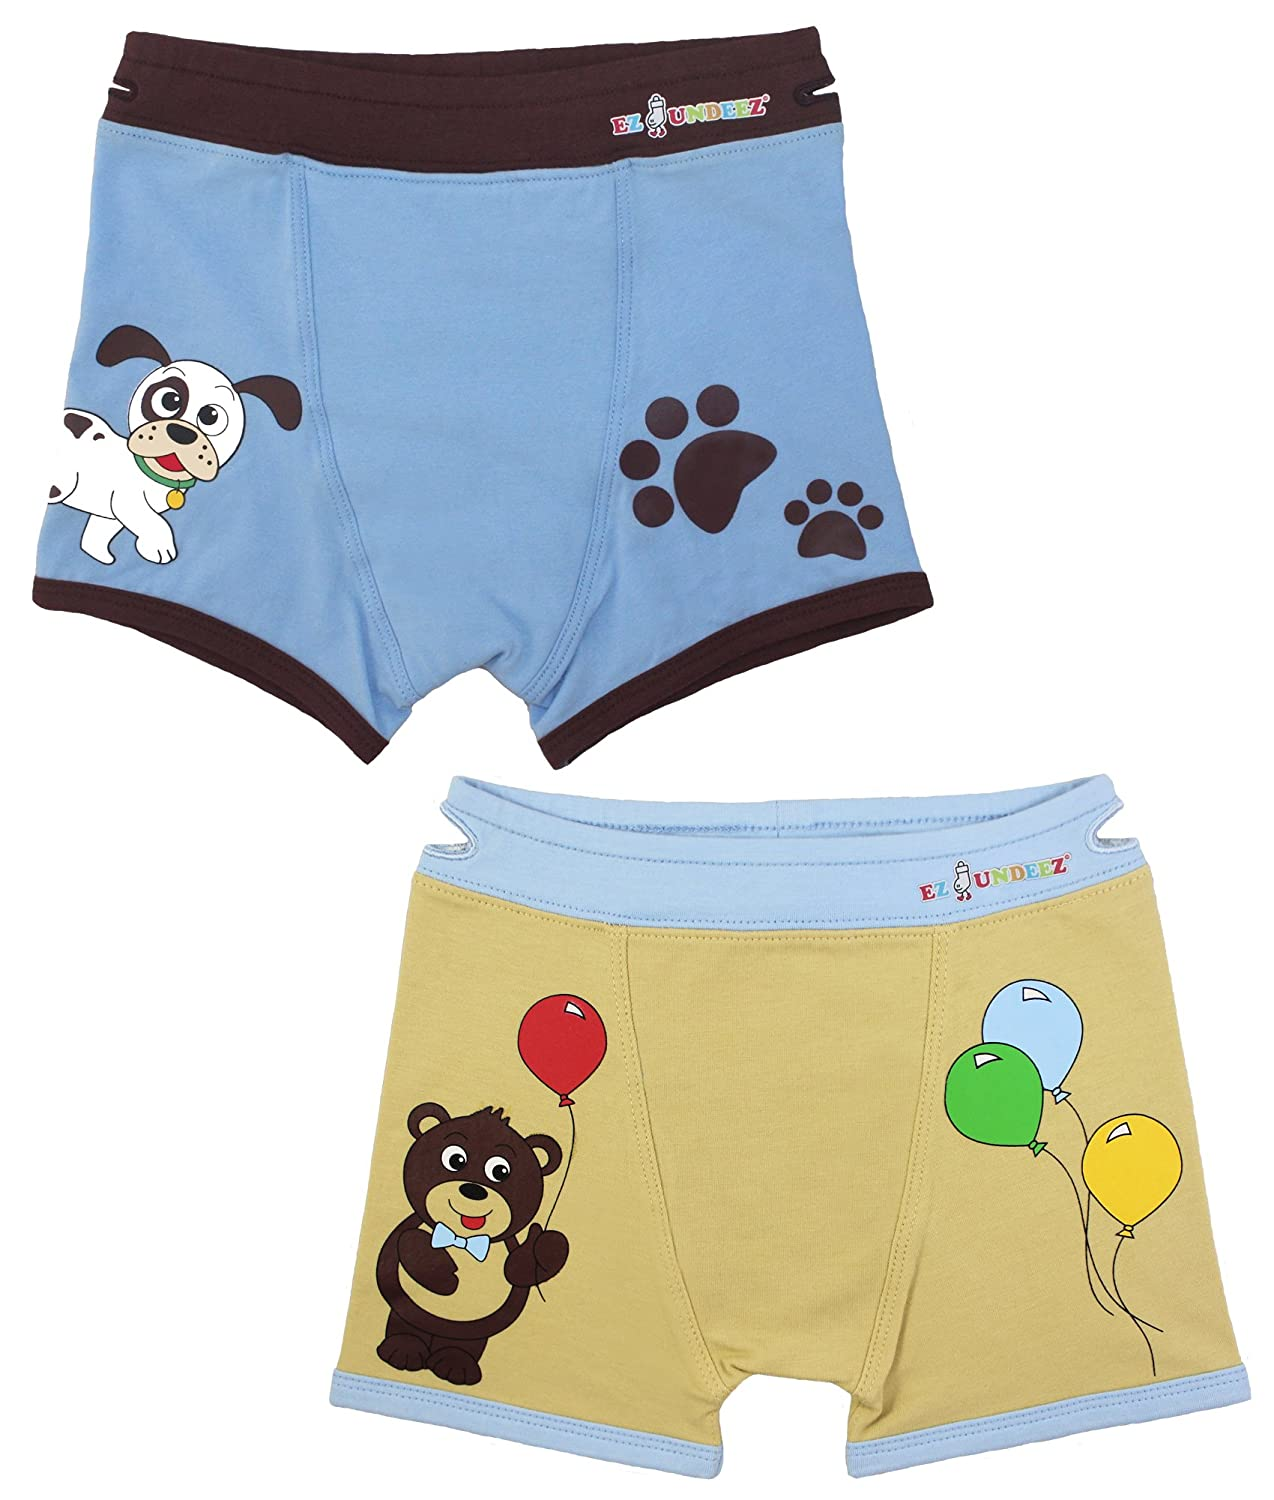 Boys Boxers Toddler Training Underwear with Ez Pull up Handles Ez Sox